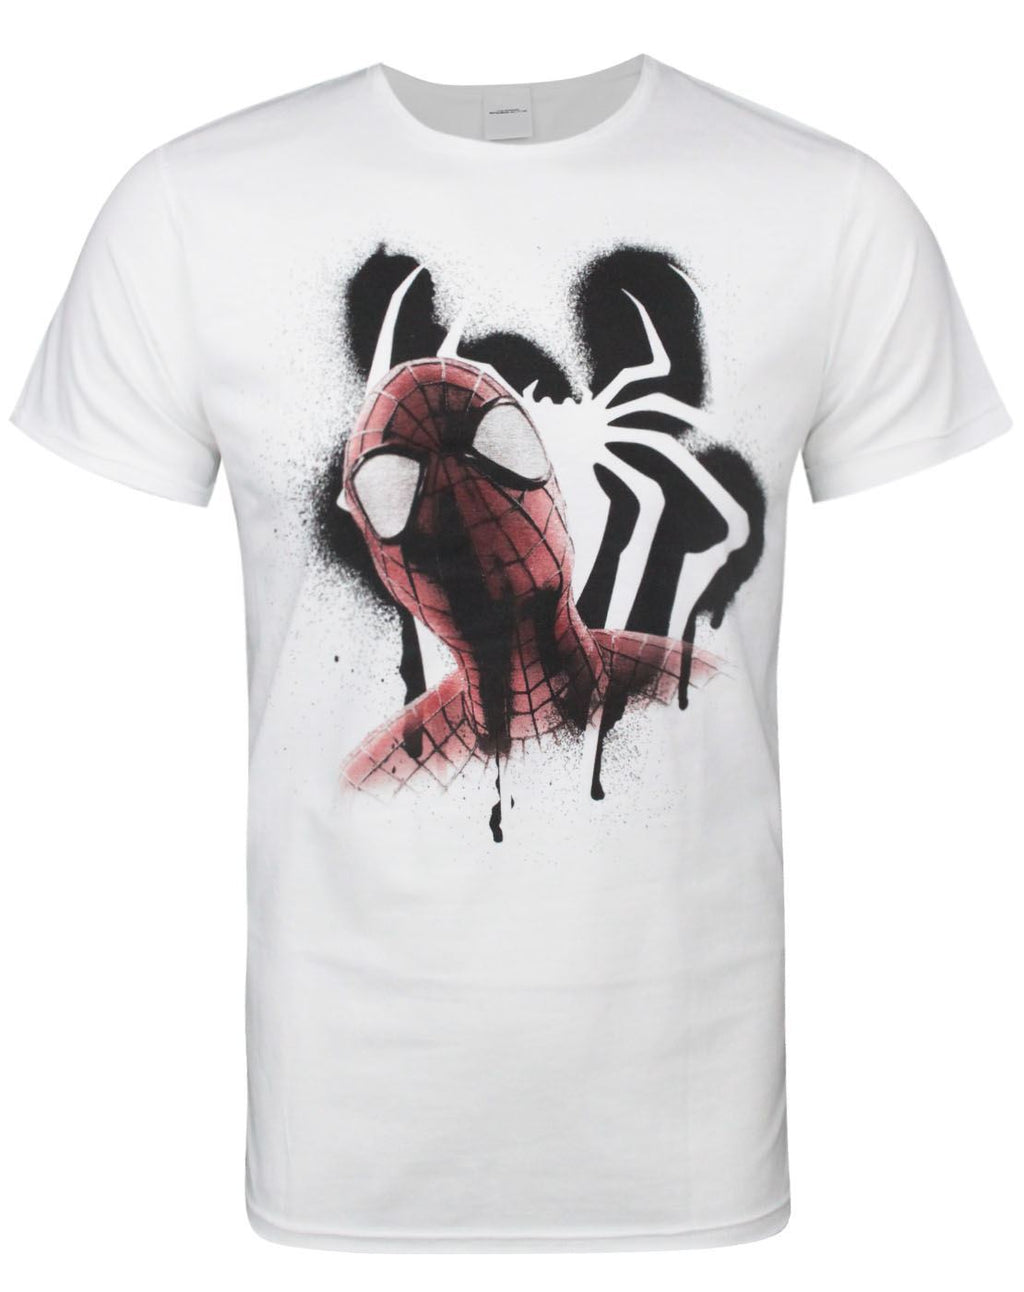 Amazing Spider-Man 2 Men's T-Shirt